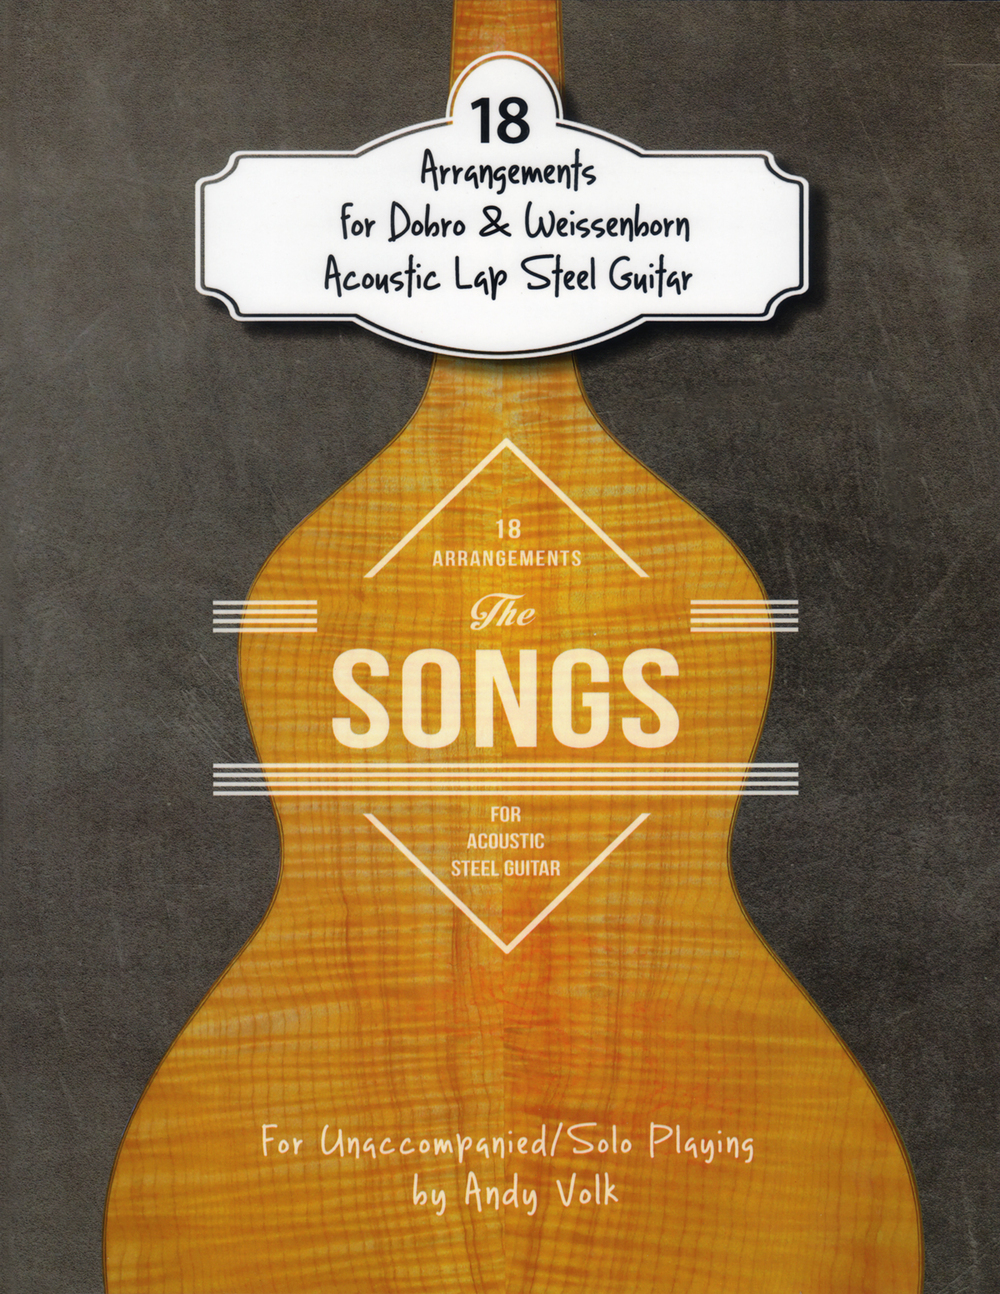 18 Arrangements for Dobro & Weissenborn Acousti...